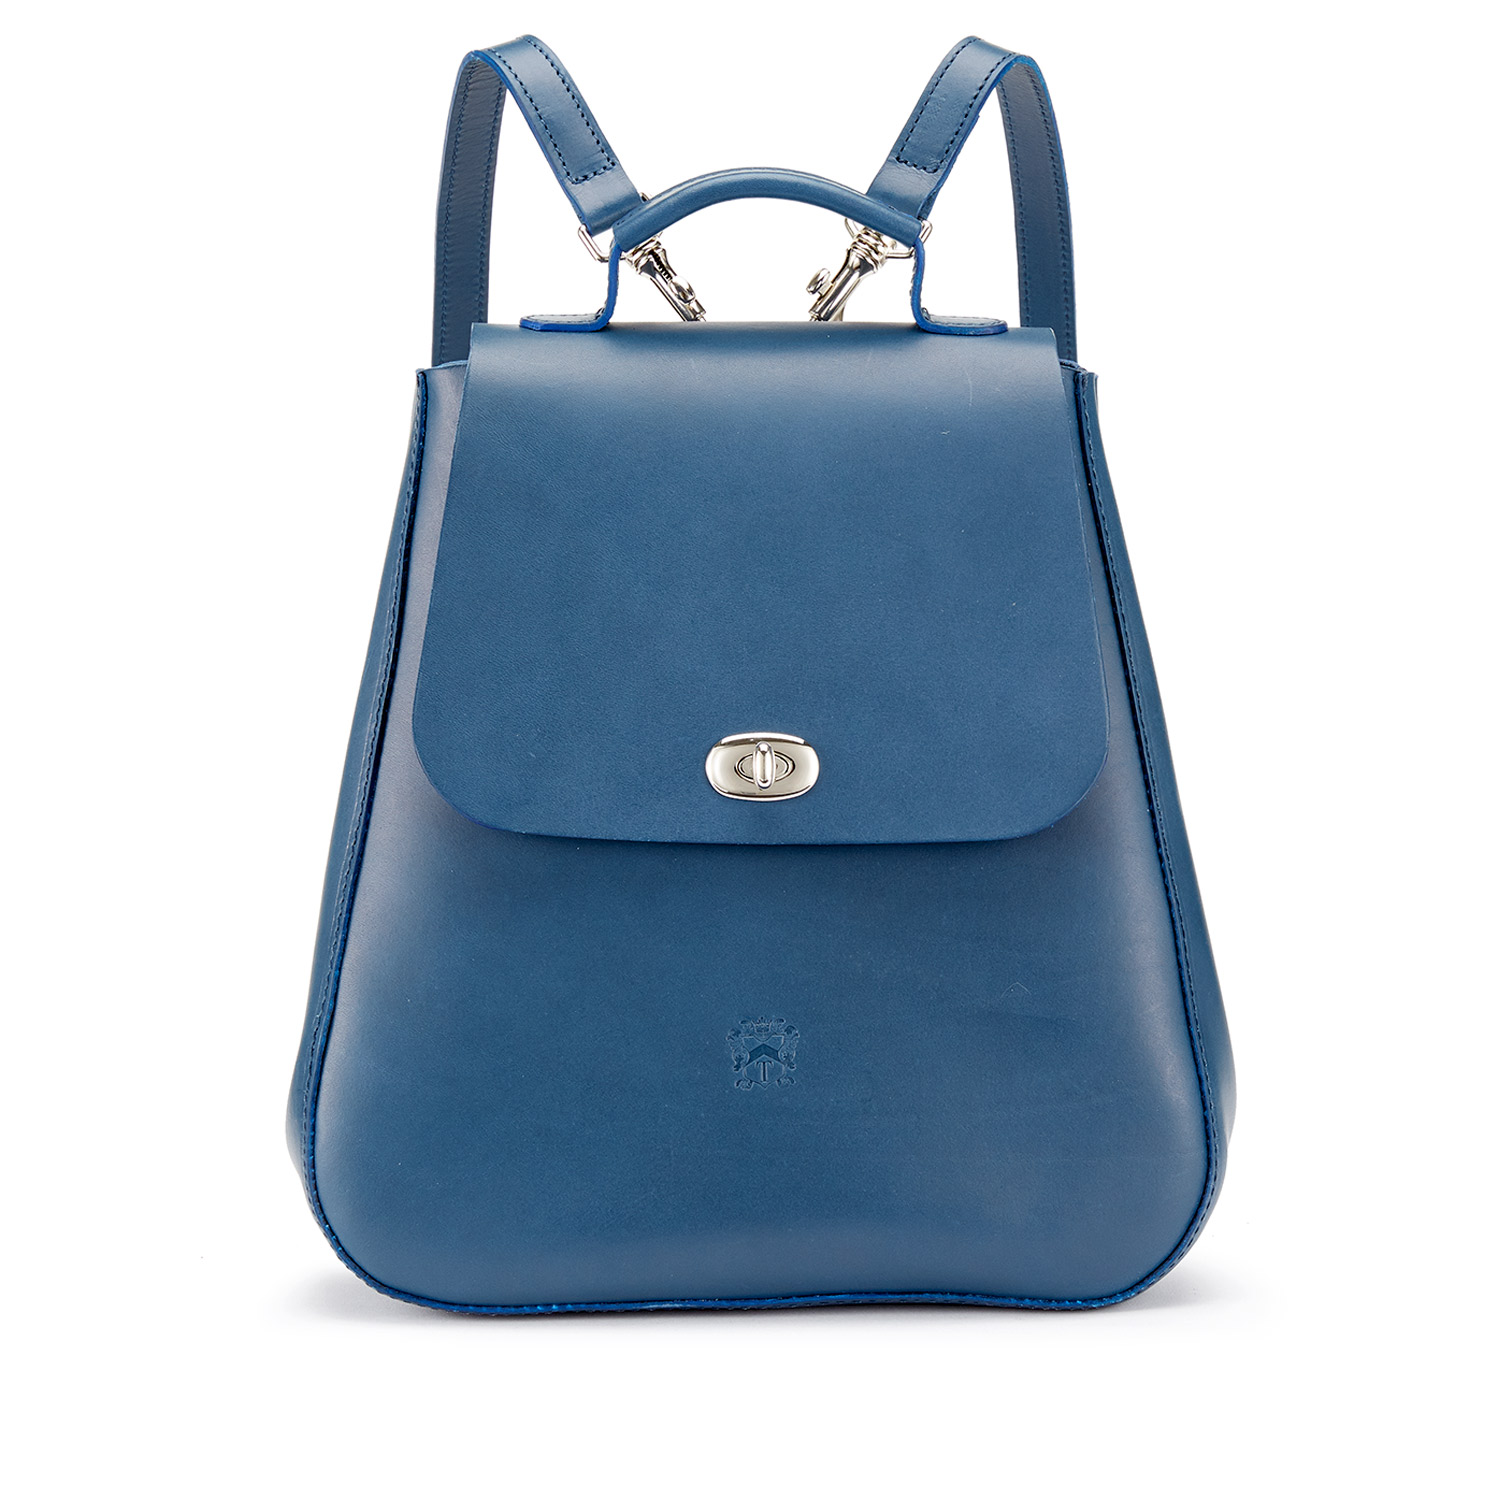 Tusting Marine Blue Leather Backpack Made in England